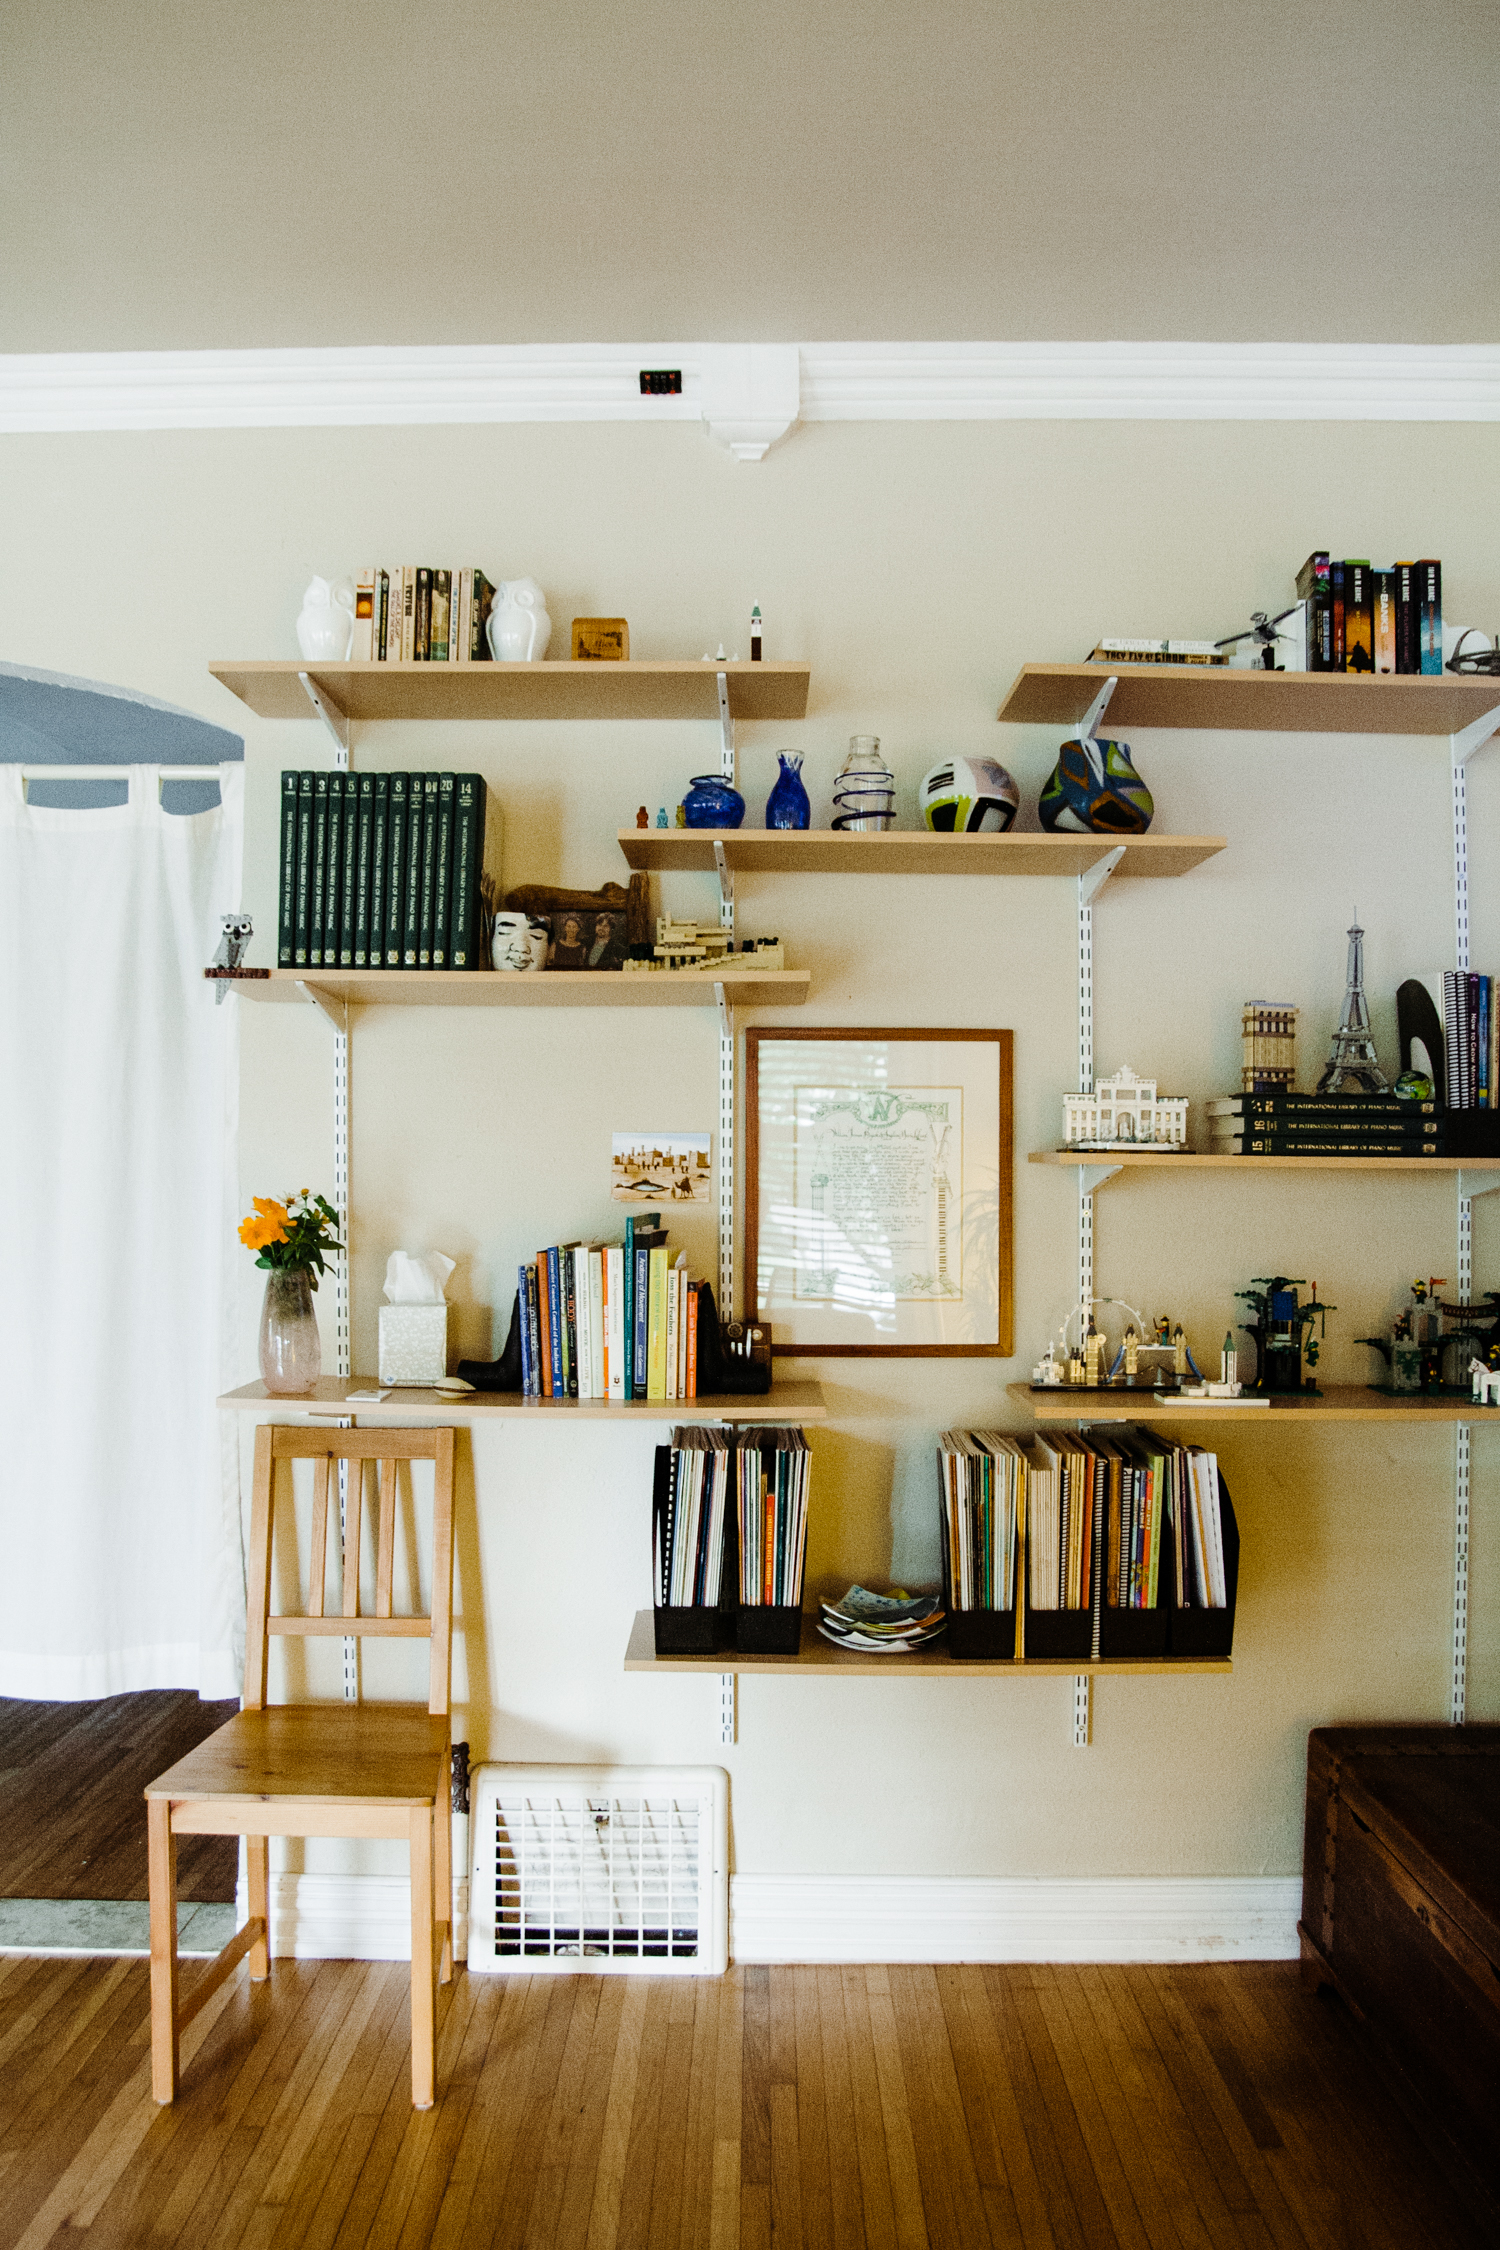 We loved that the knick knacks on the new wall-mounted shelves represented this charming couple so well– Angeline's hand-blown glass pieces and William's Lego sets!